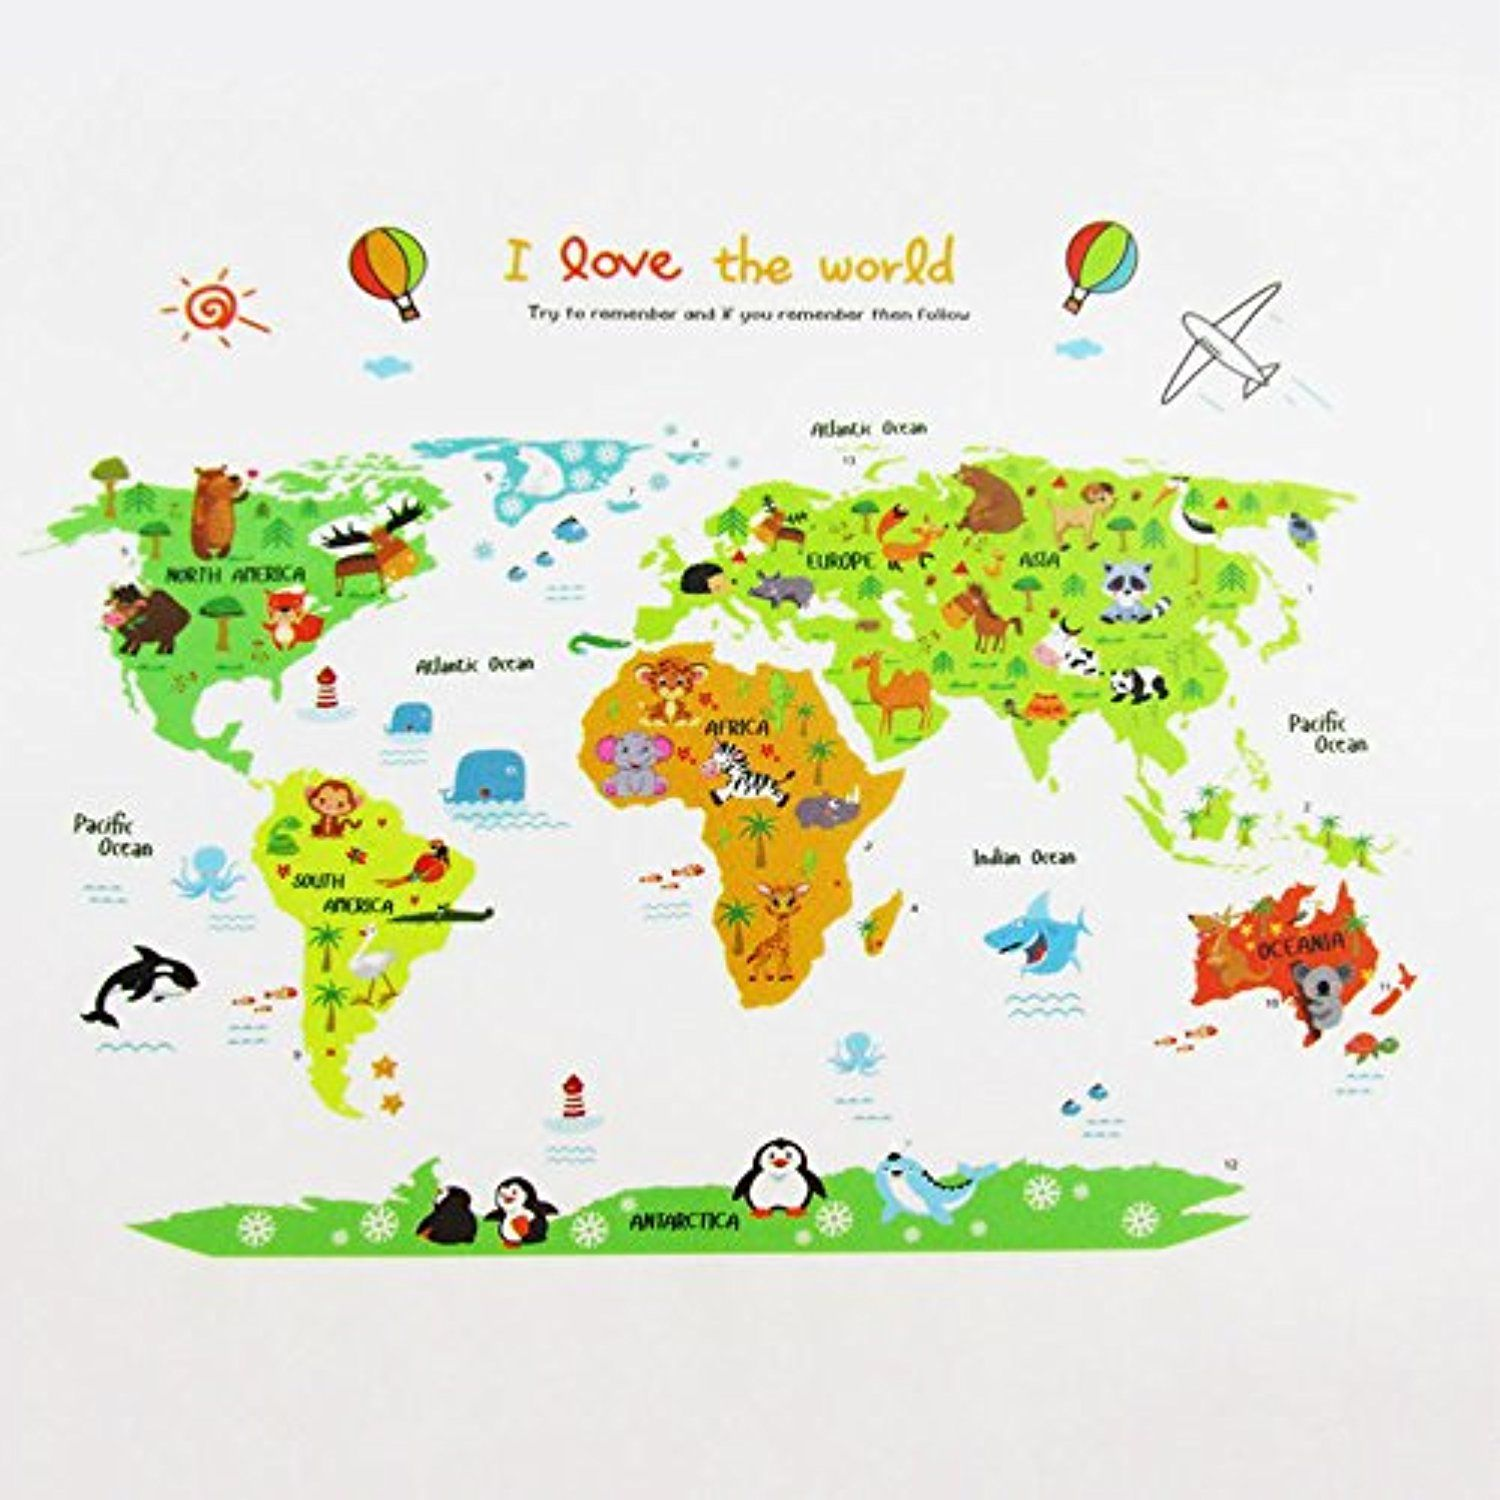 Toonol colorful world map wall sticker decal vinyl animal cartoon cheap posters uk buy quality decorative art posters directly from china posters writing suppliers colorful world map wall sticker decal vinyl animal gumiabroncs Choice Image